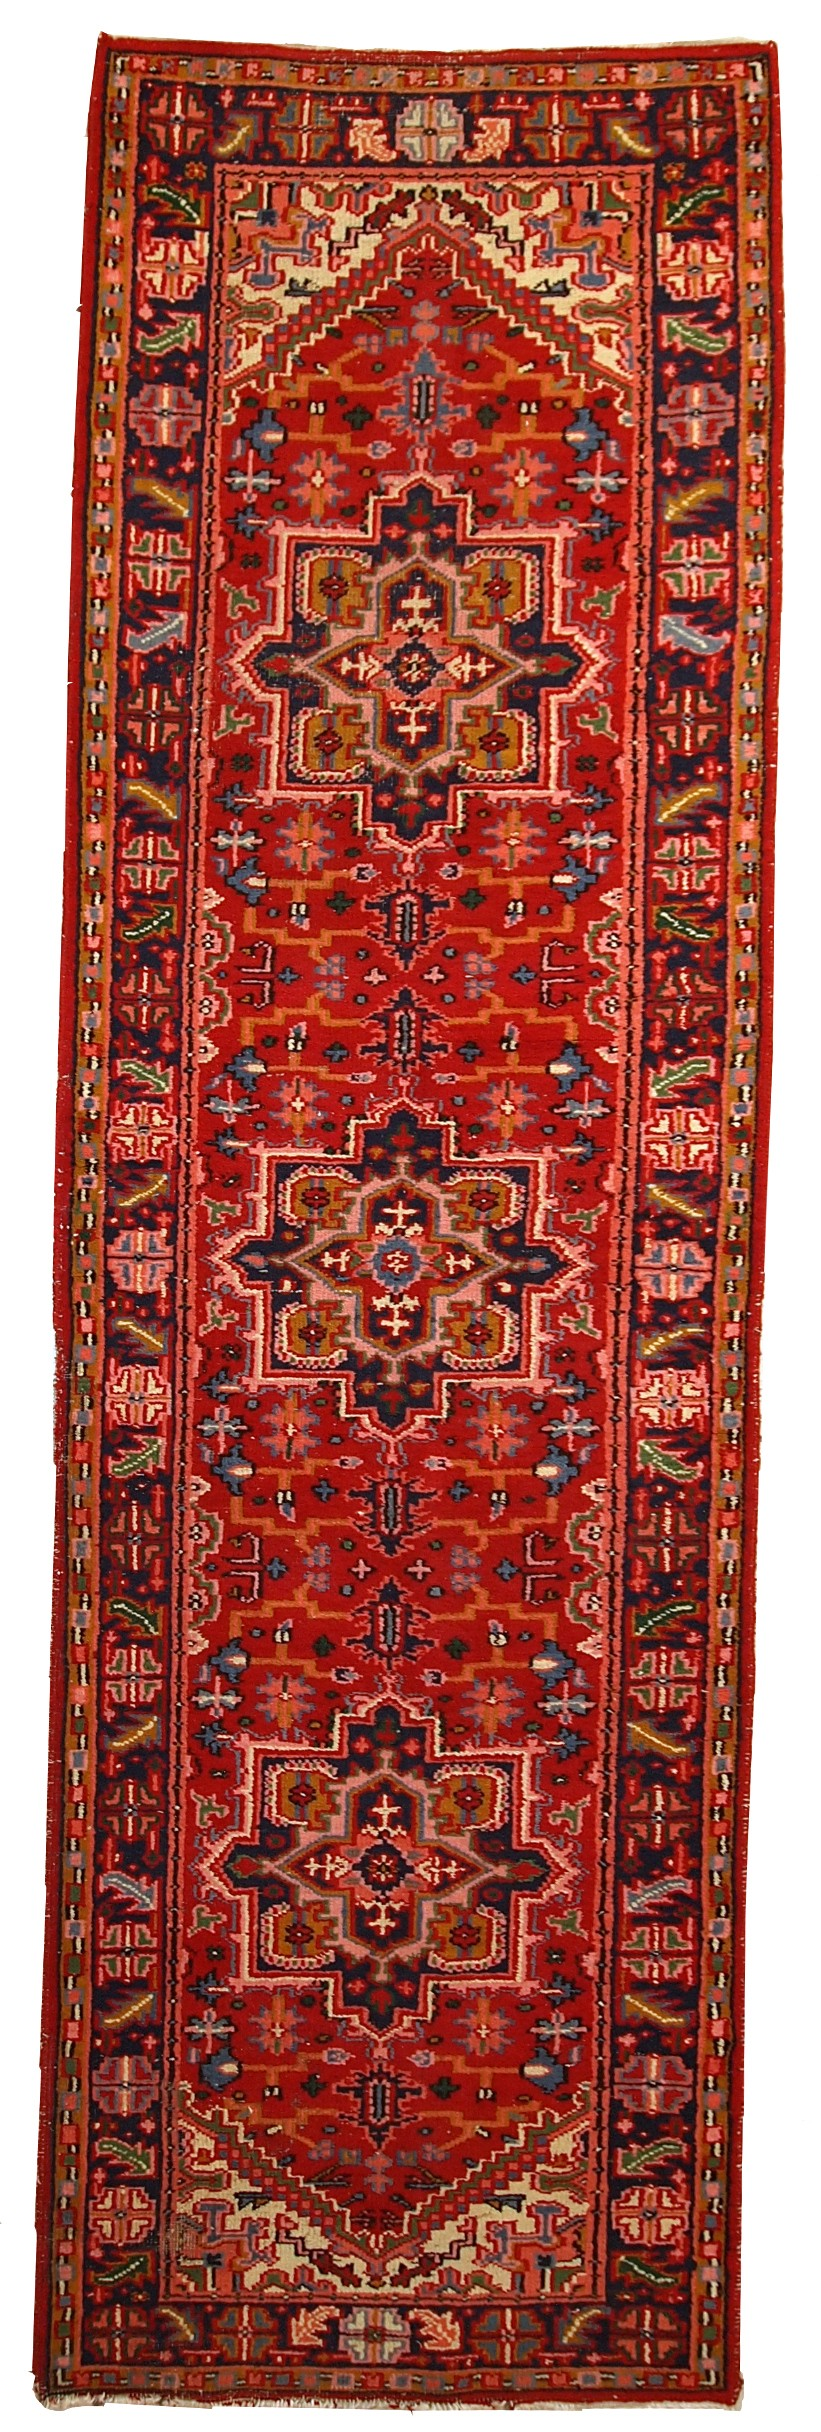 Handmade Antique Persian Heriz Runner Rug